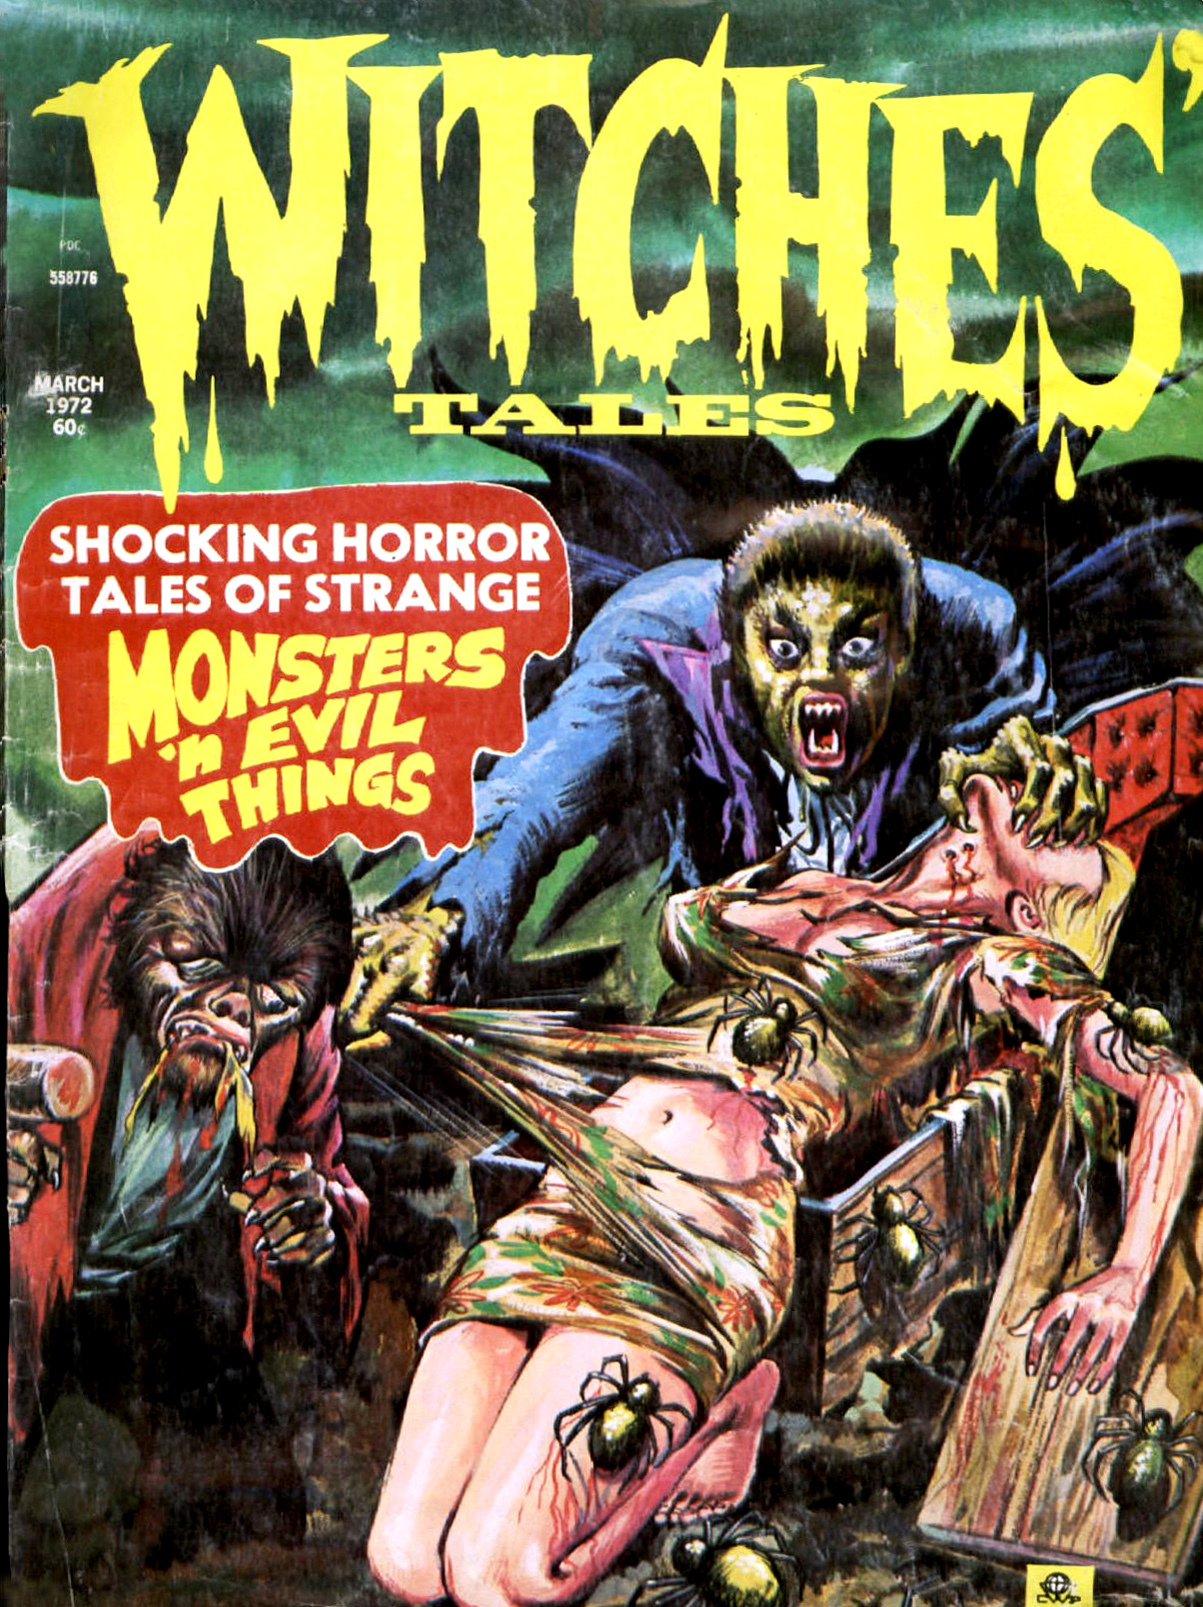 Witches' Tales Vol. 4 #2 (Eerie Publications 1972)